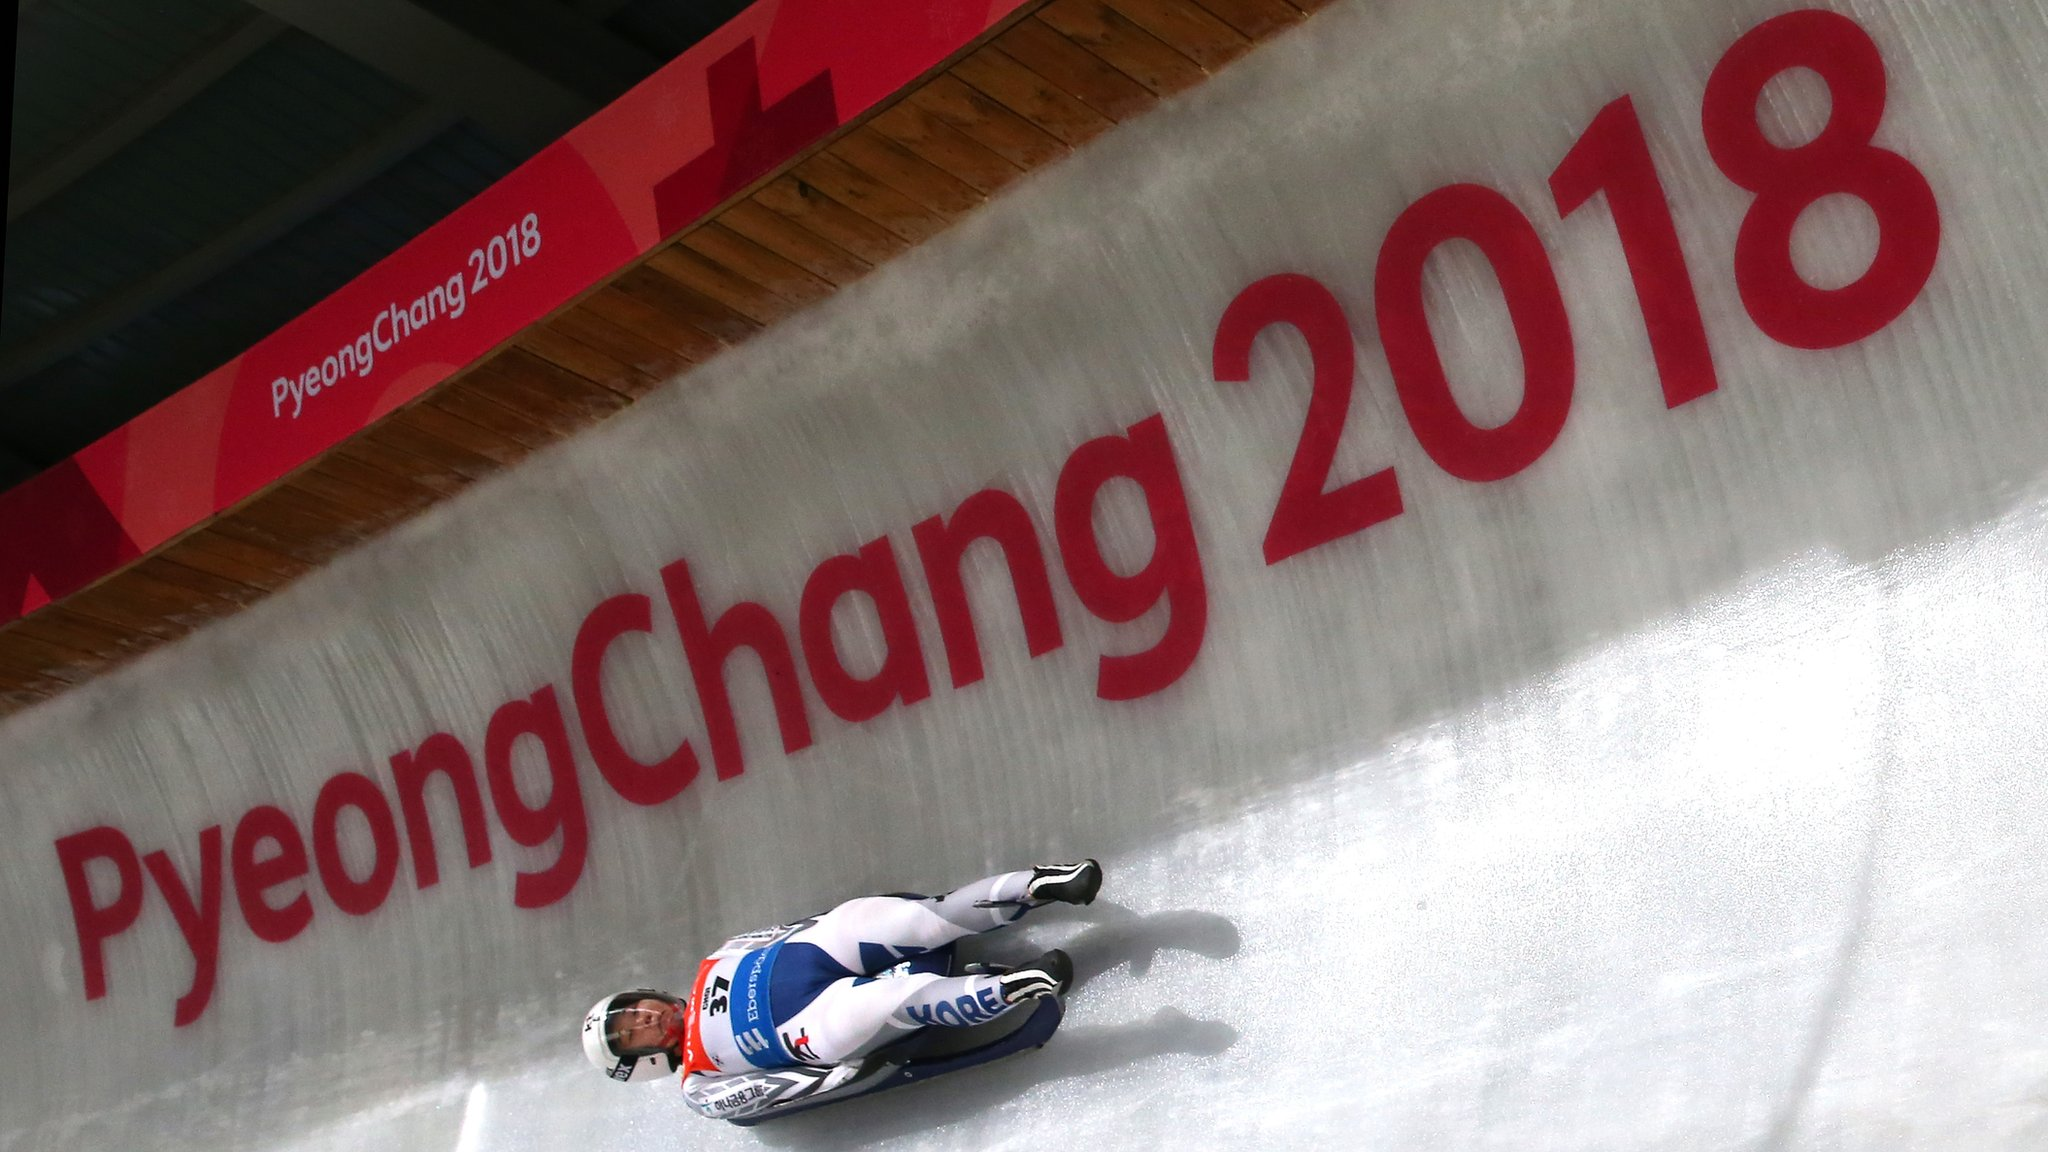 Winter Olympics: Day-by-day guide to Pyeongchang 2018